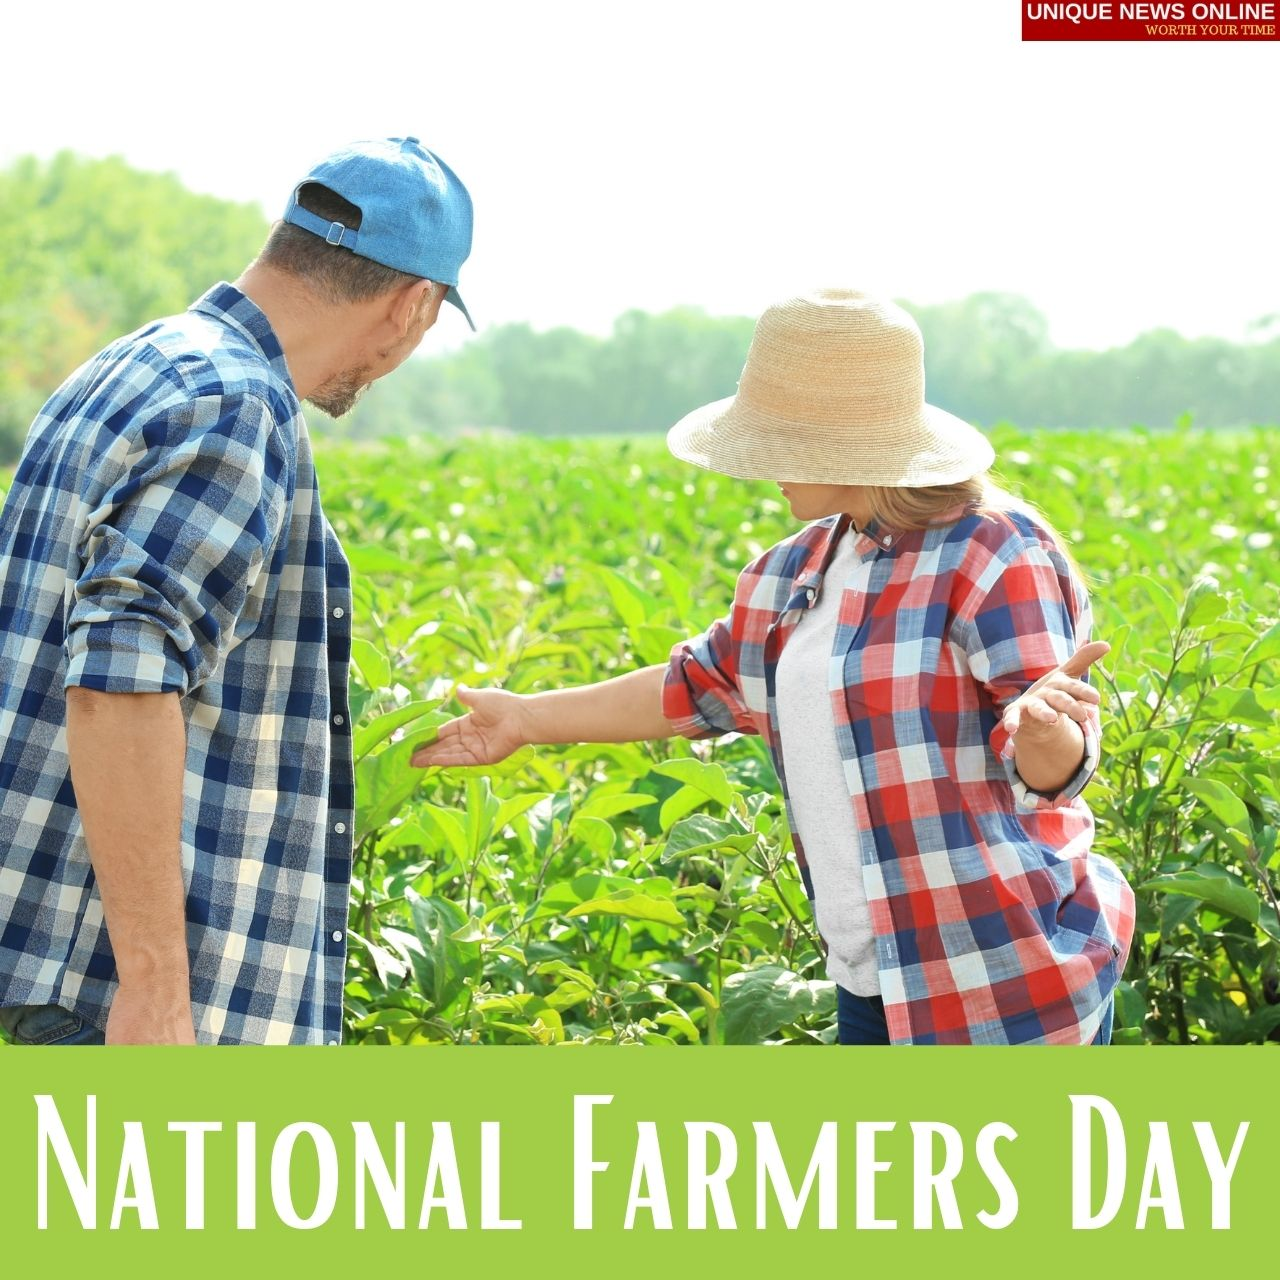 National Farmers Day (US) 2021 Quotes, Wishes, Images, Messages, and Greetings to share